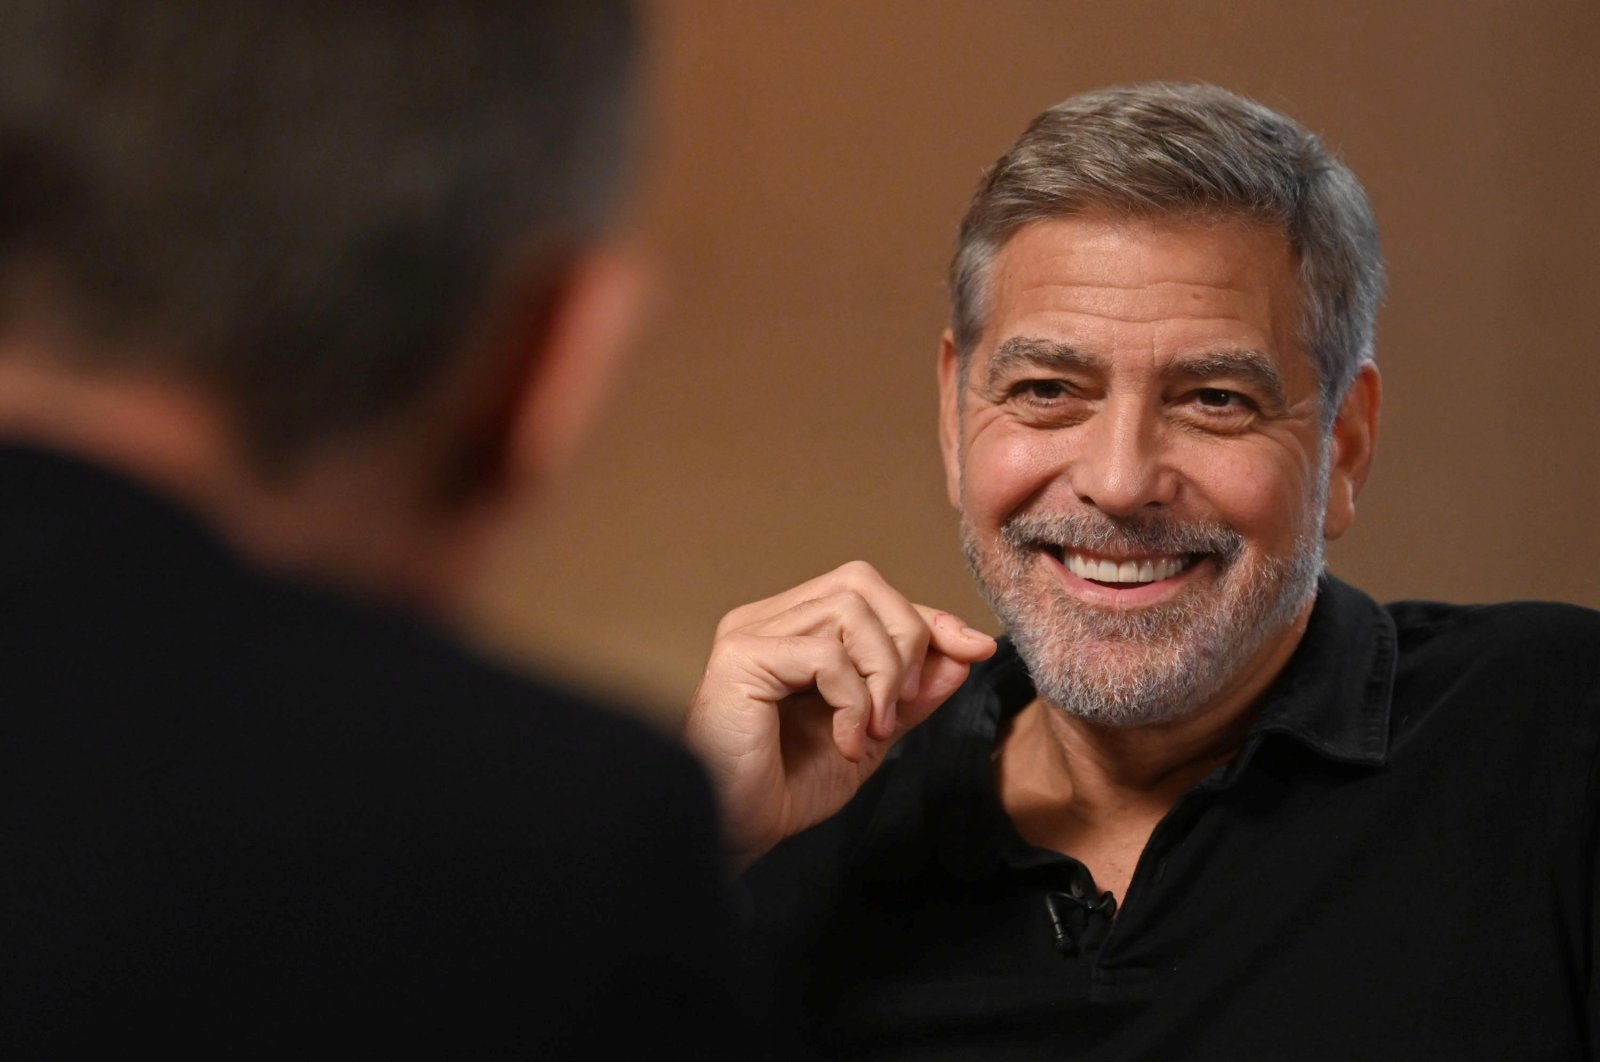 Actor George Clooney appears as a guest on the Andrew Marr Show at the BBC Broadcasting House in Manchester, U.K., Oct. 10, 2021. (BBC via Reuters)